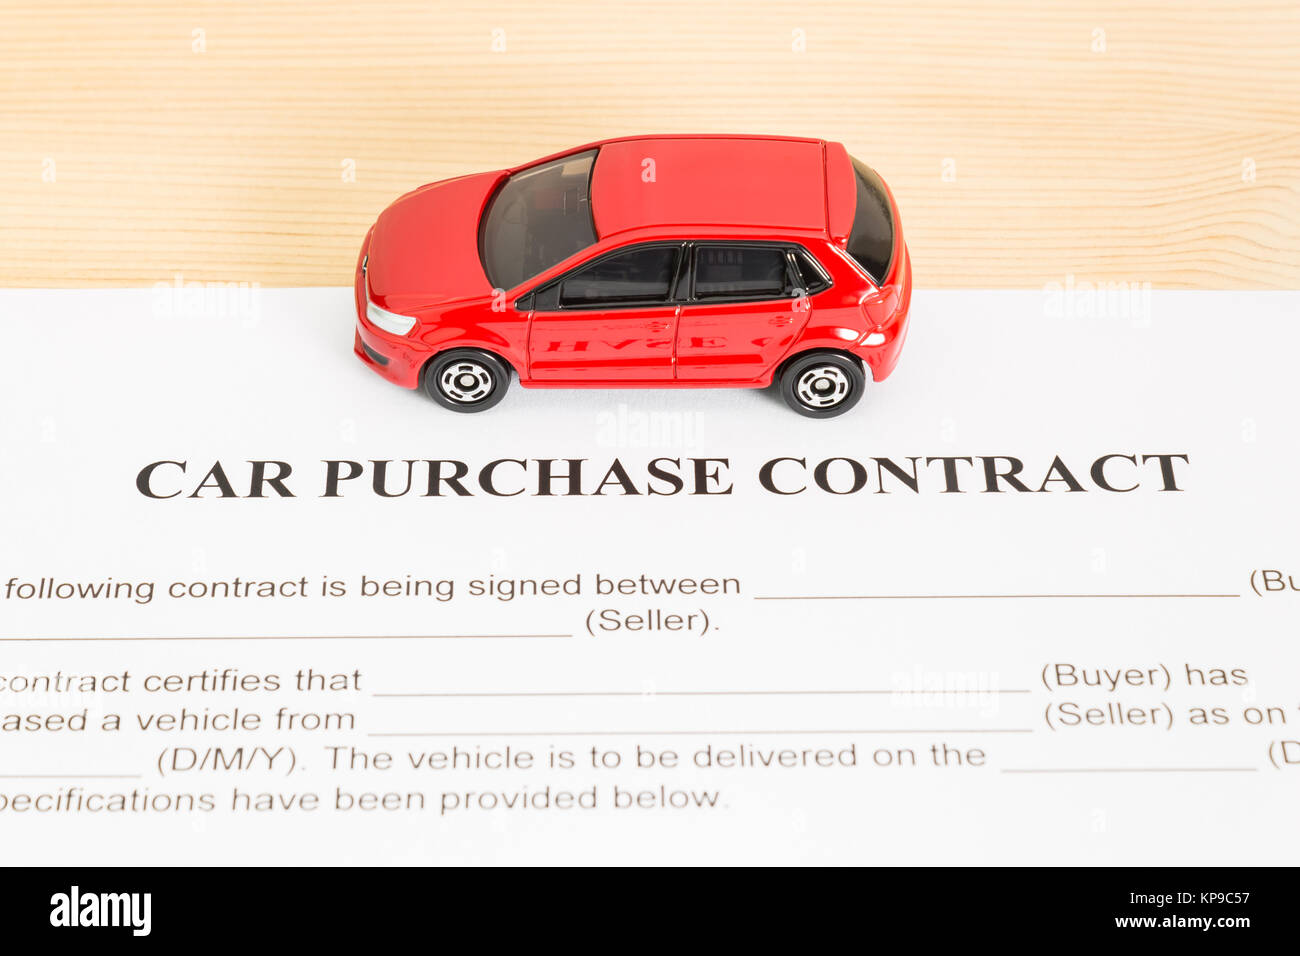 car purchase contract with red car on center stock photo 168622867